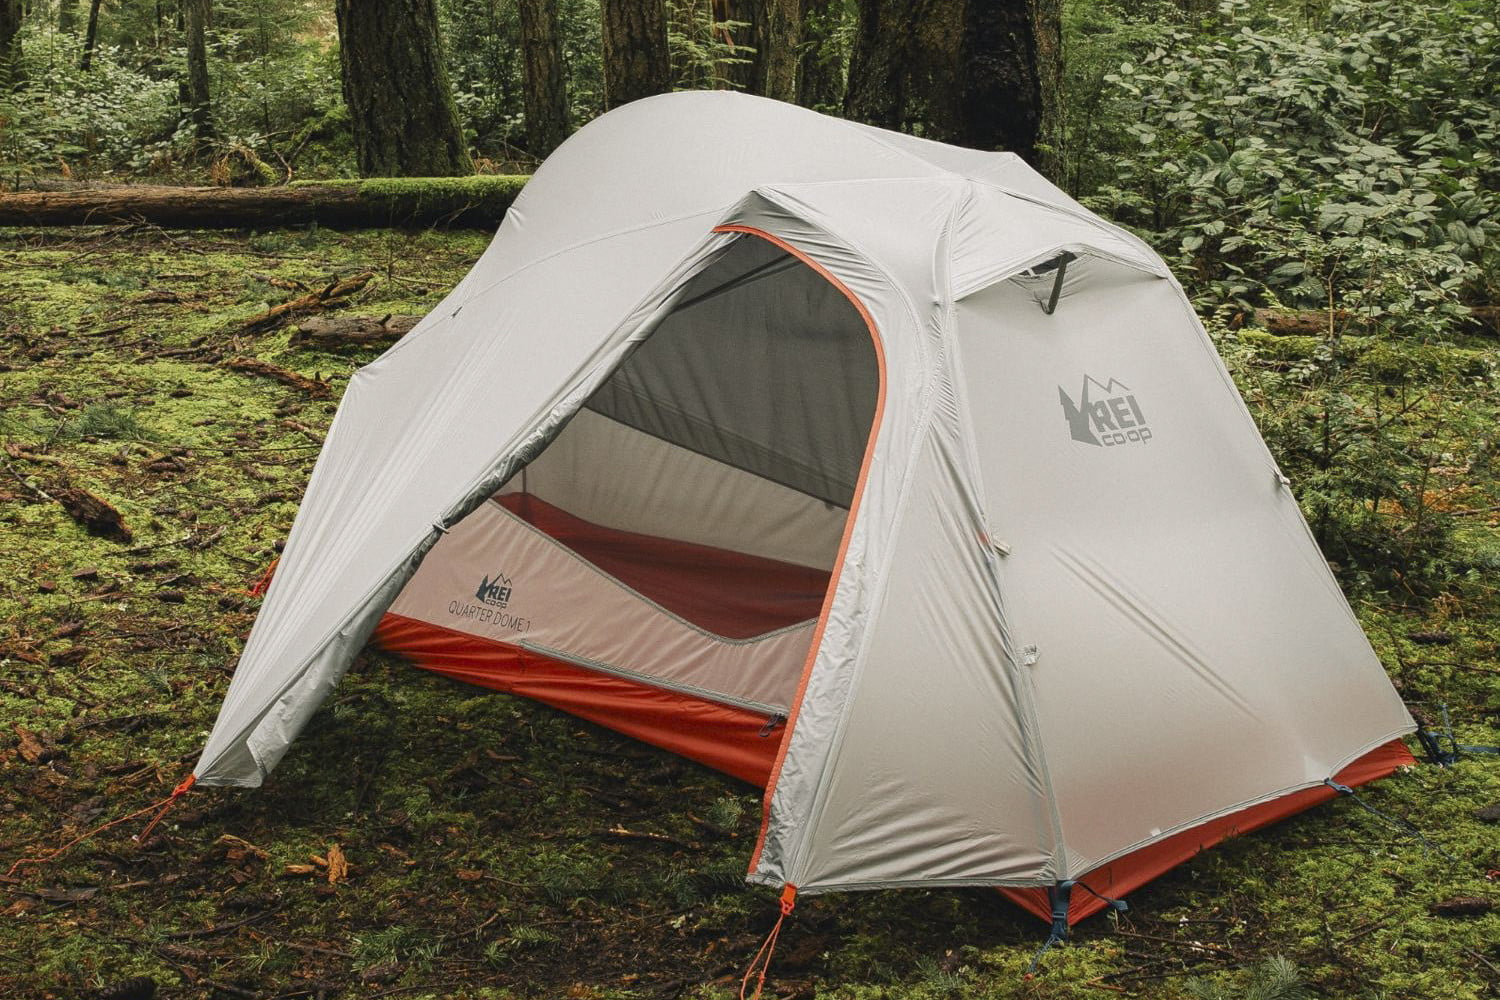 The Best Camping Tents for 2019 | Digital Trends